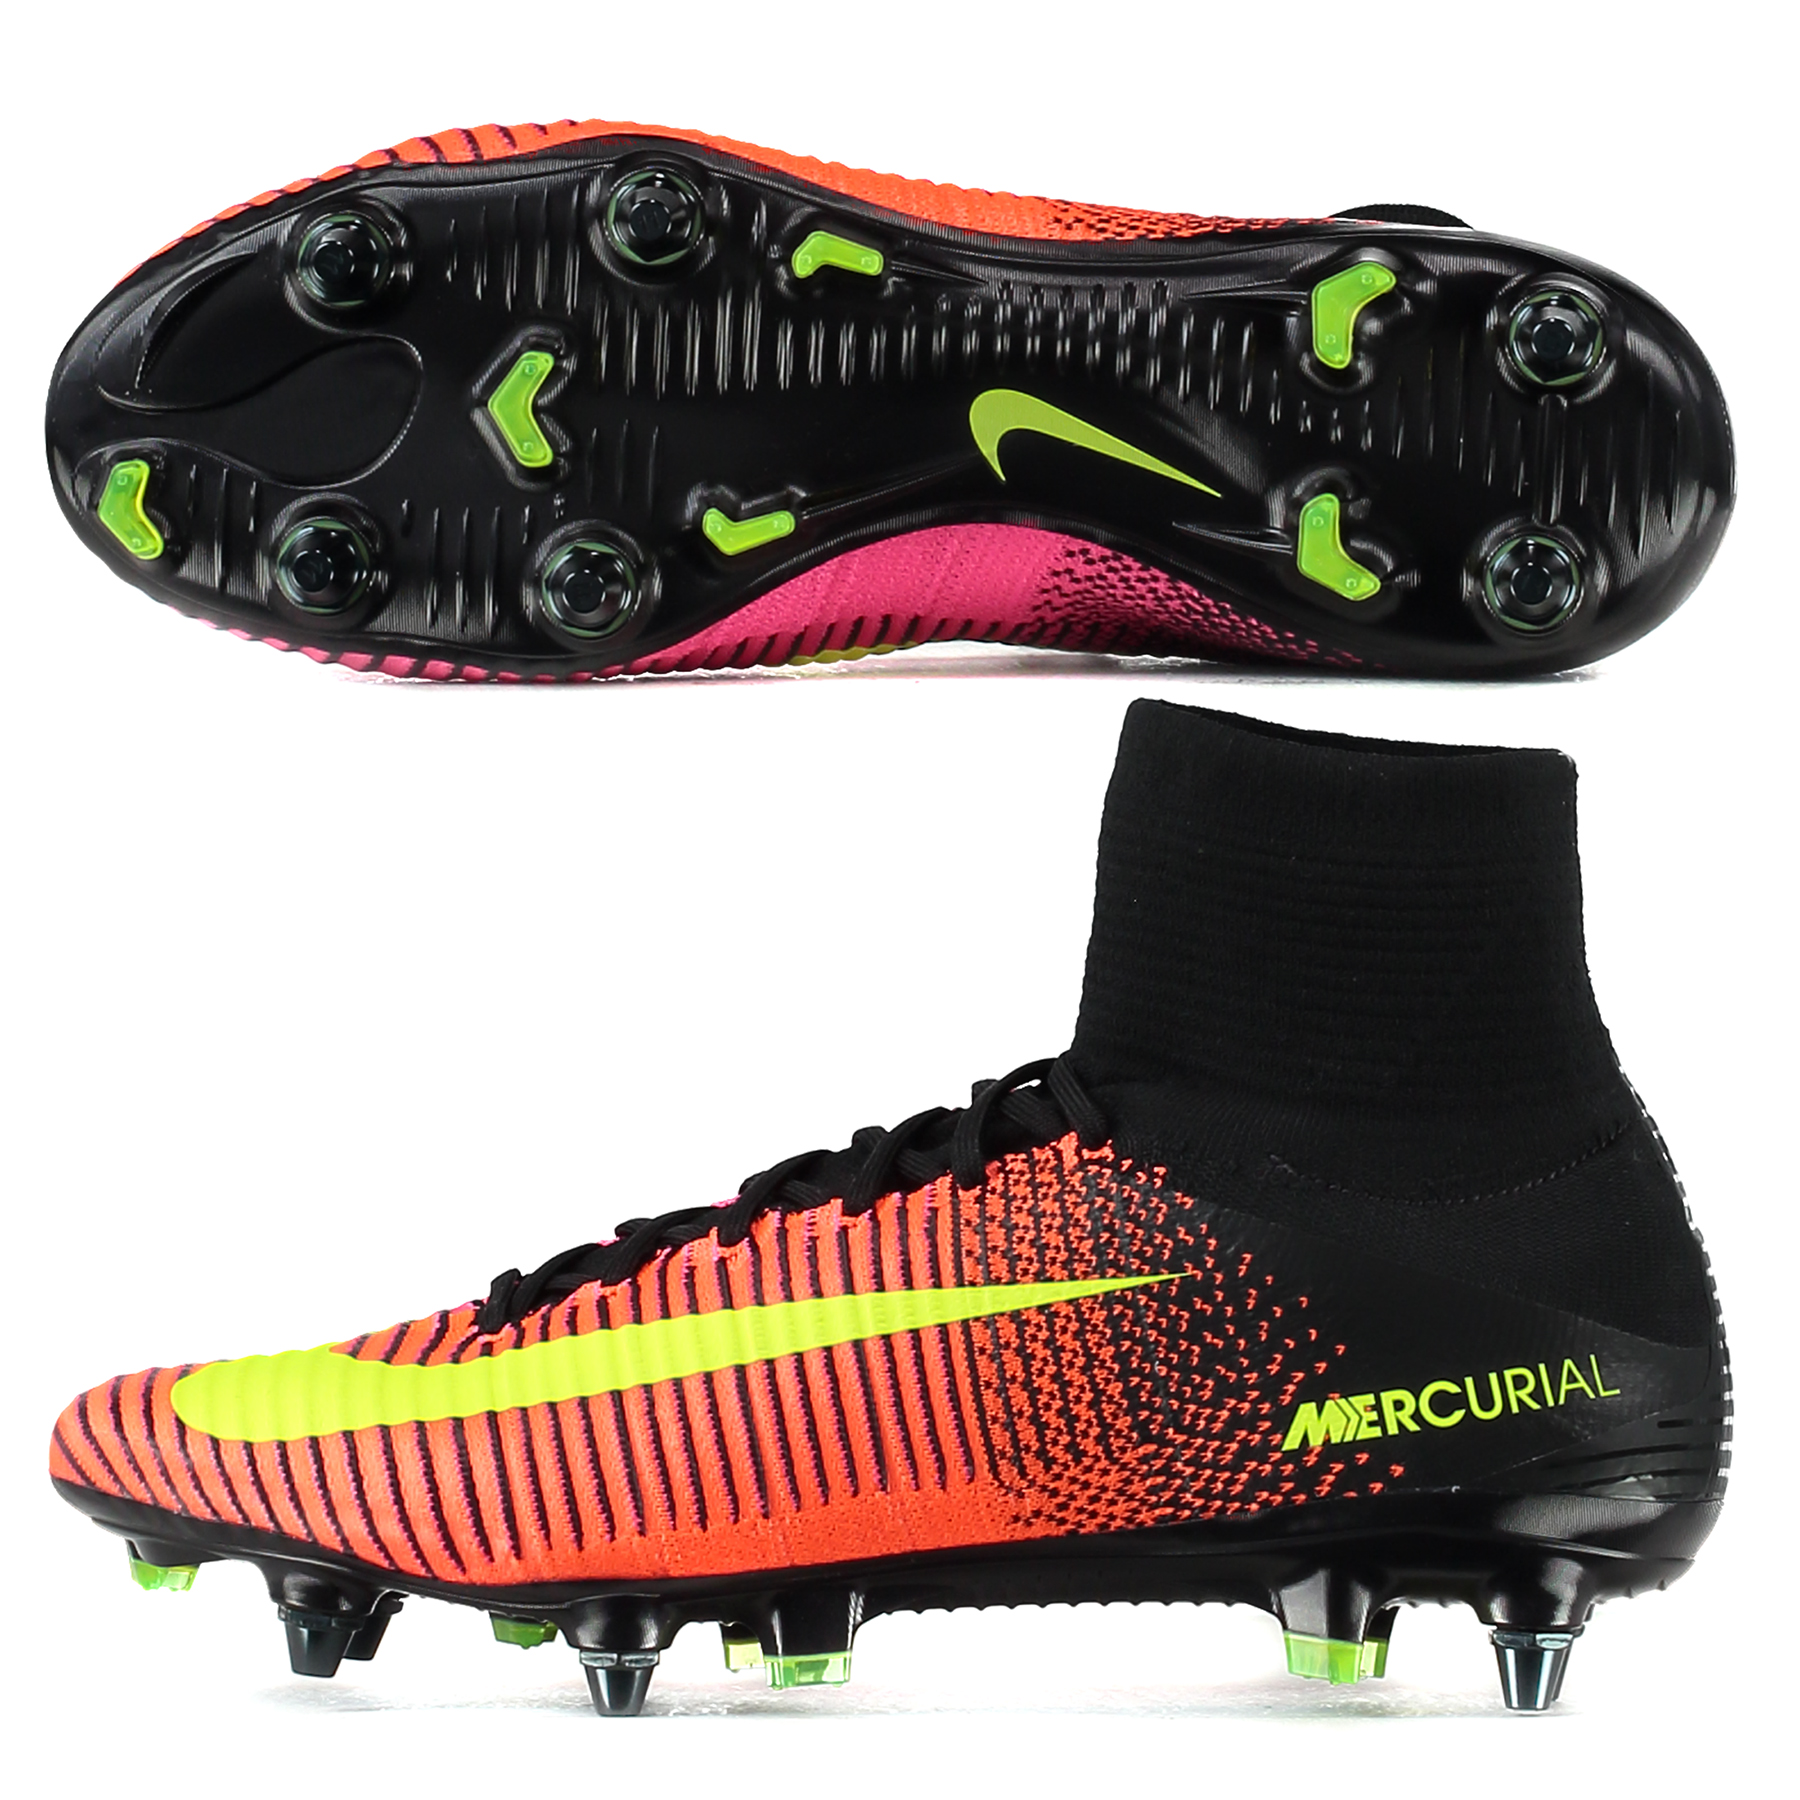 Nike Mercurial Superfly V SG-Pro Total Crims